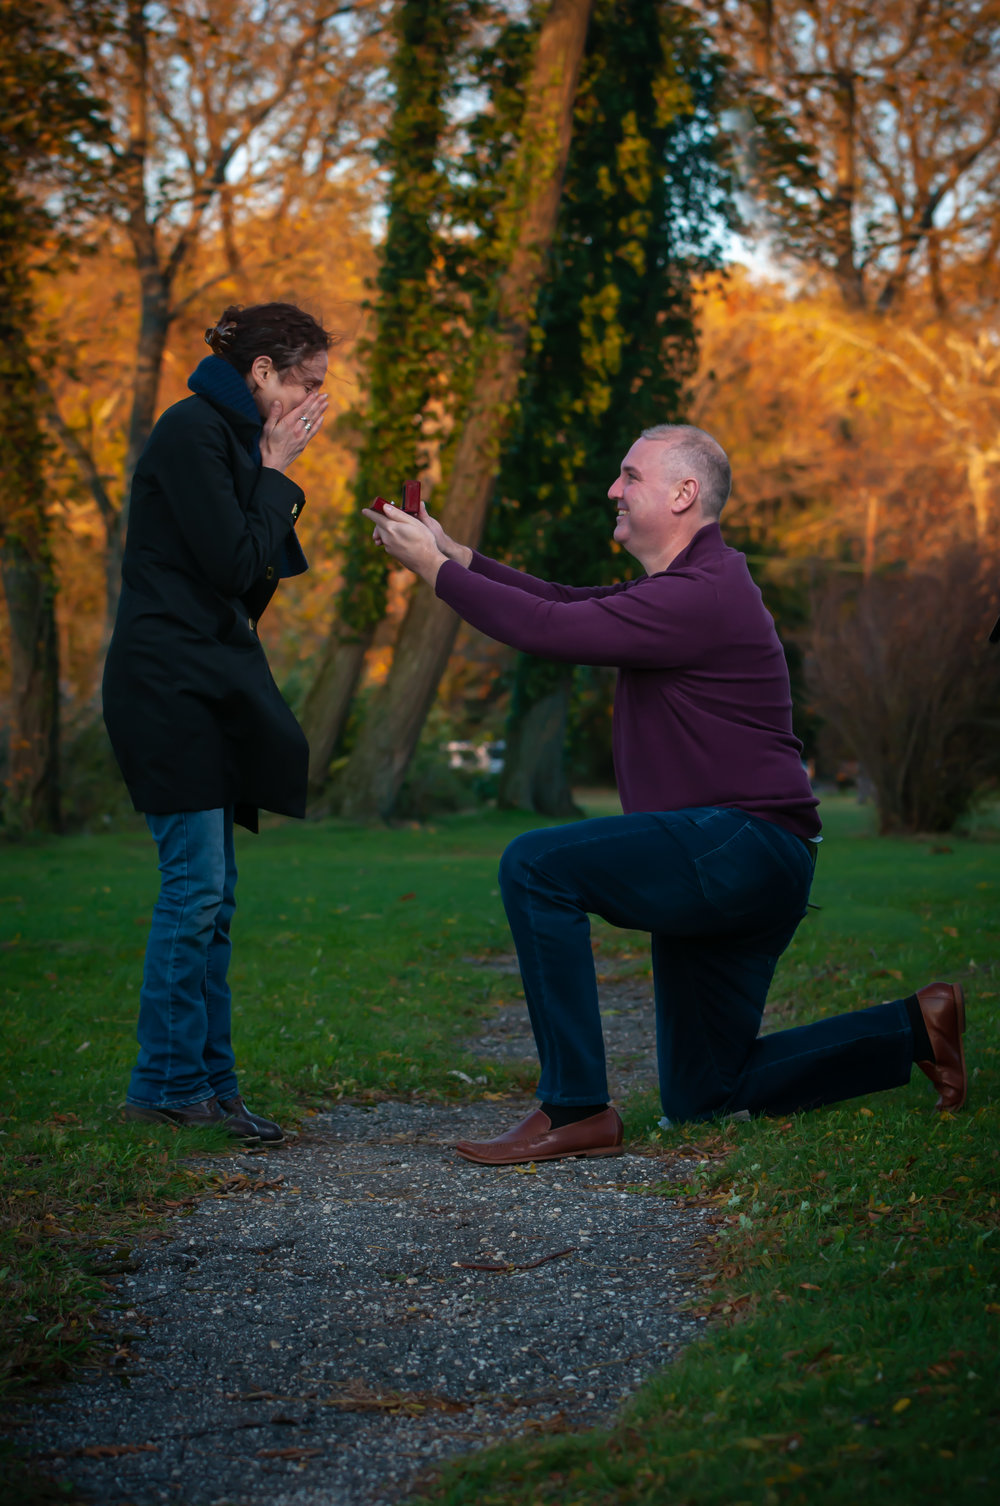 FIneArt_CarrieAnneGonzalez_NYPhotography_CarrieWestonStudios_Portrait_Engagement-5289.jpg